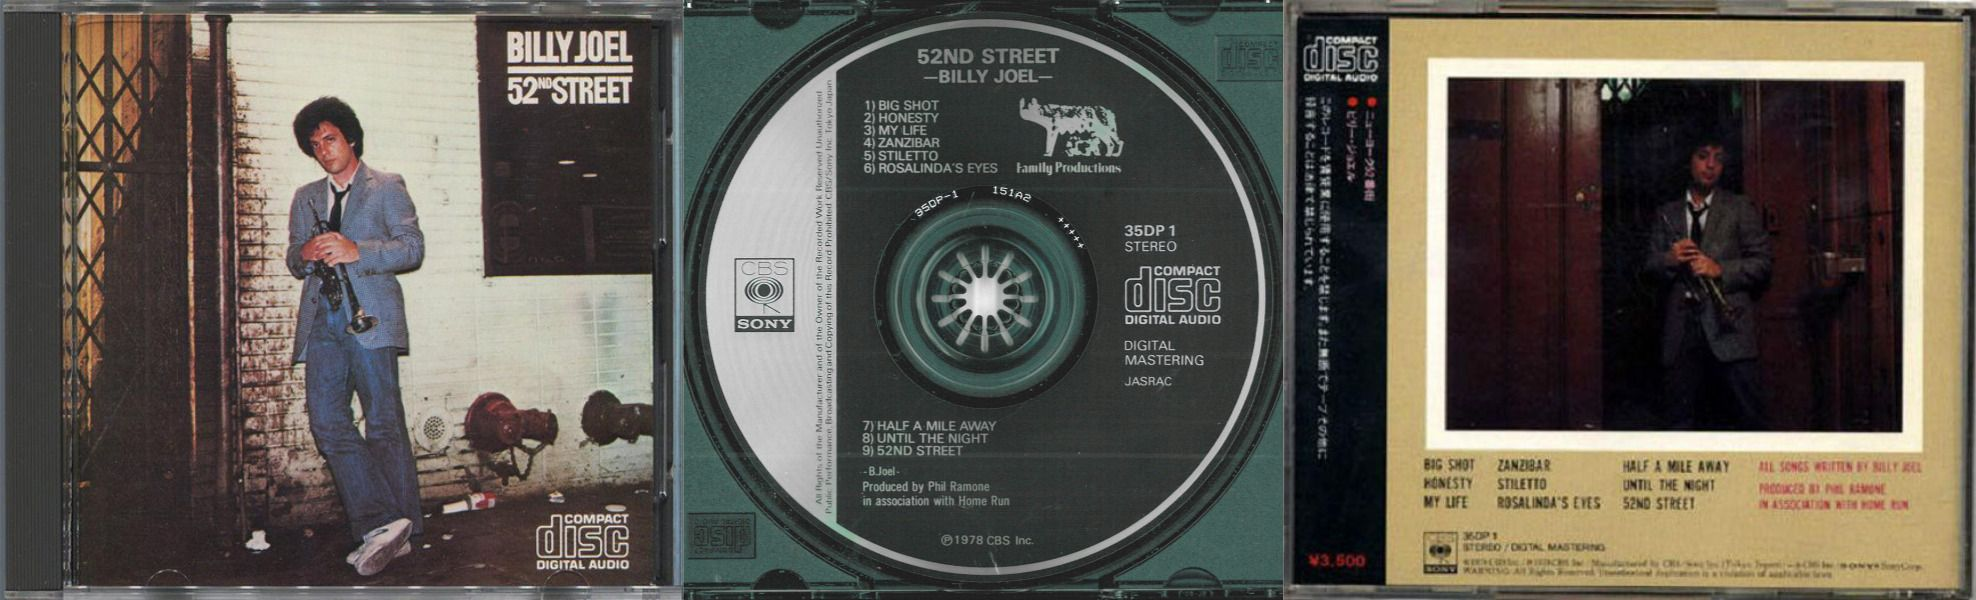 Billy Joel 52nd Street CD